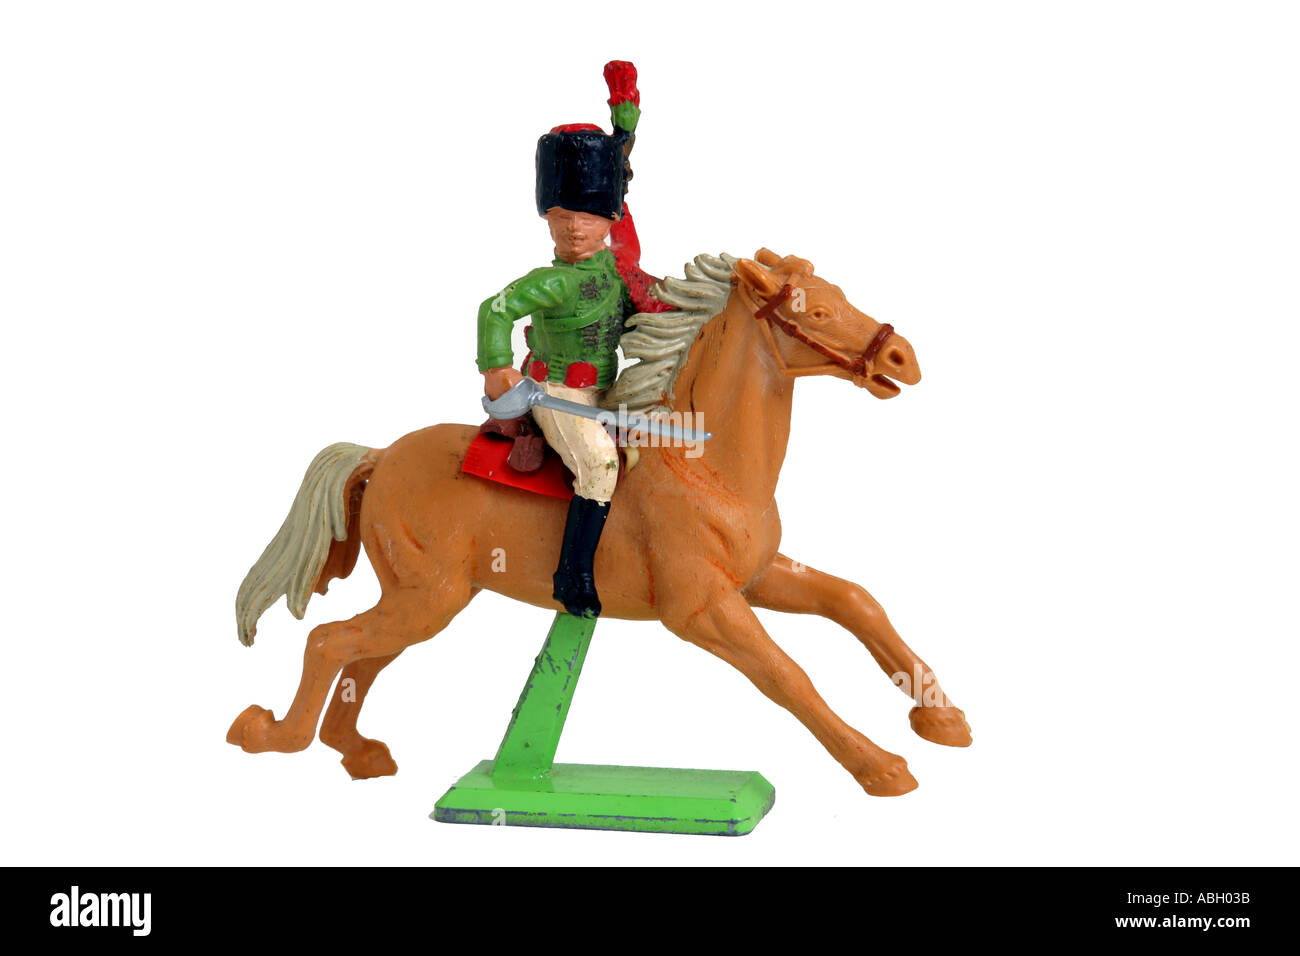 Toy soldier Prussian cavalryman from Waterloo era - Stock Image